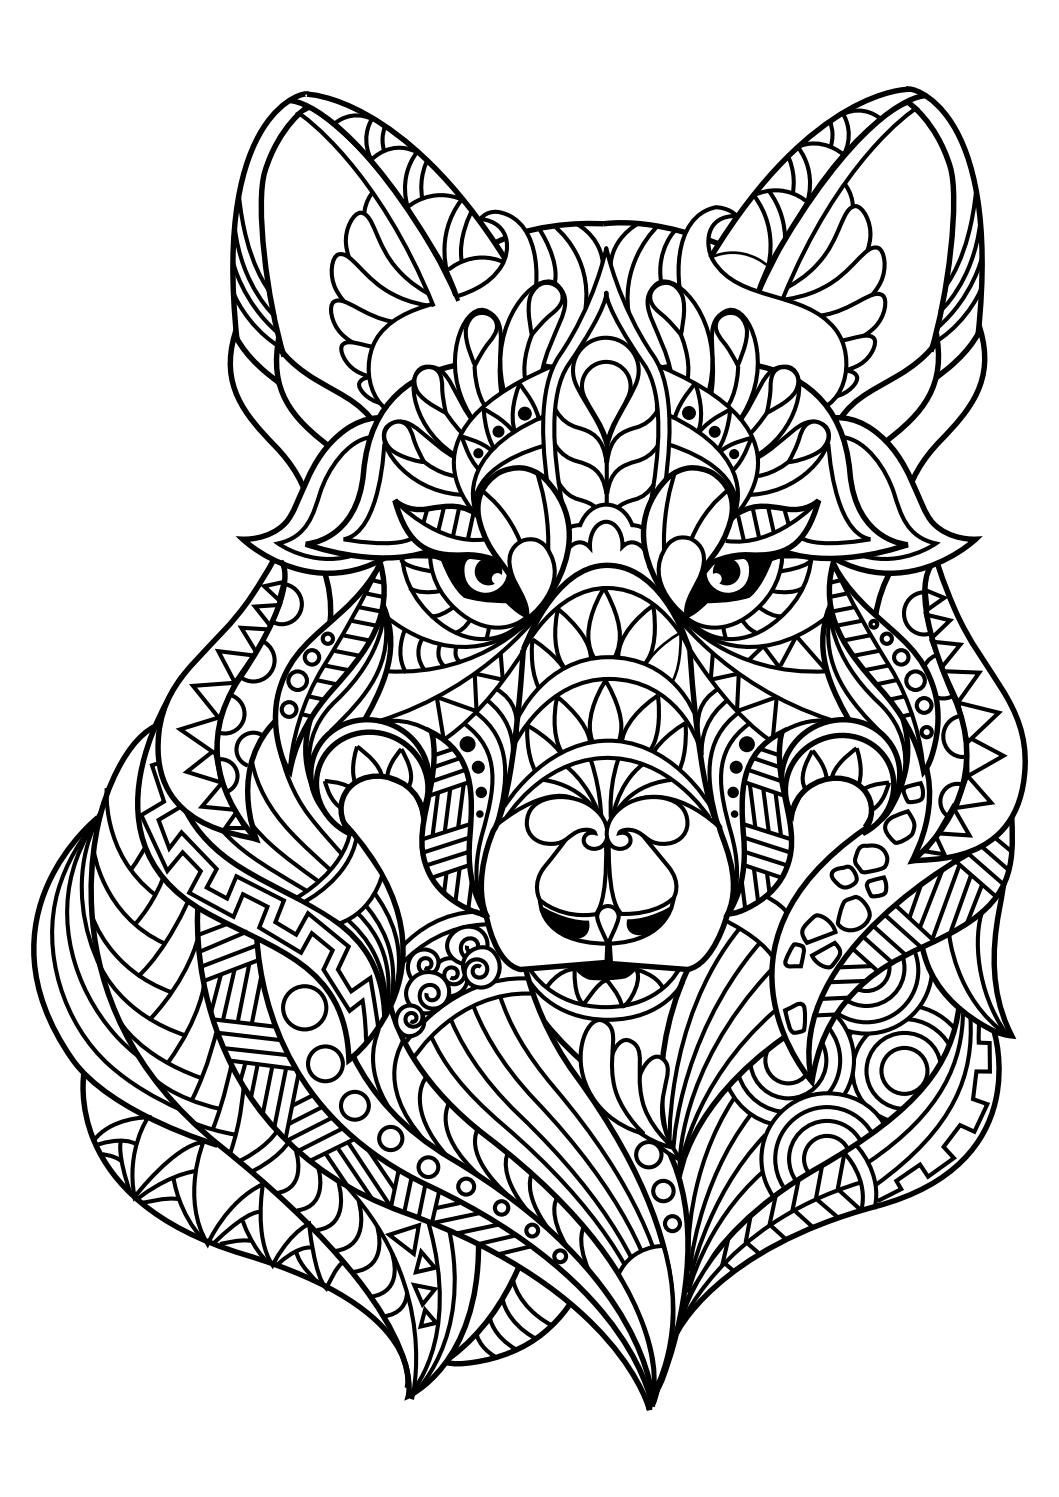 Animal Coloring Pages Pdf | Coloring - Animals | Animal Coloring - Free Printable Animal Coloring Pages